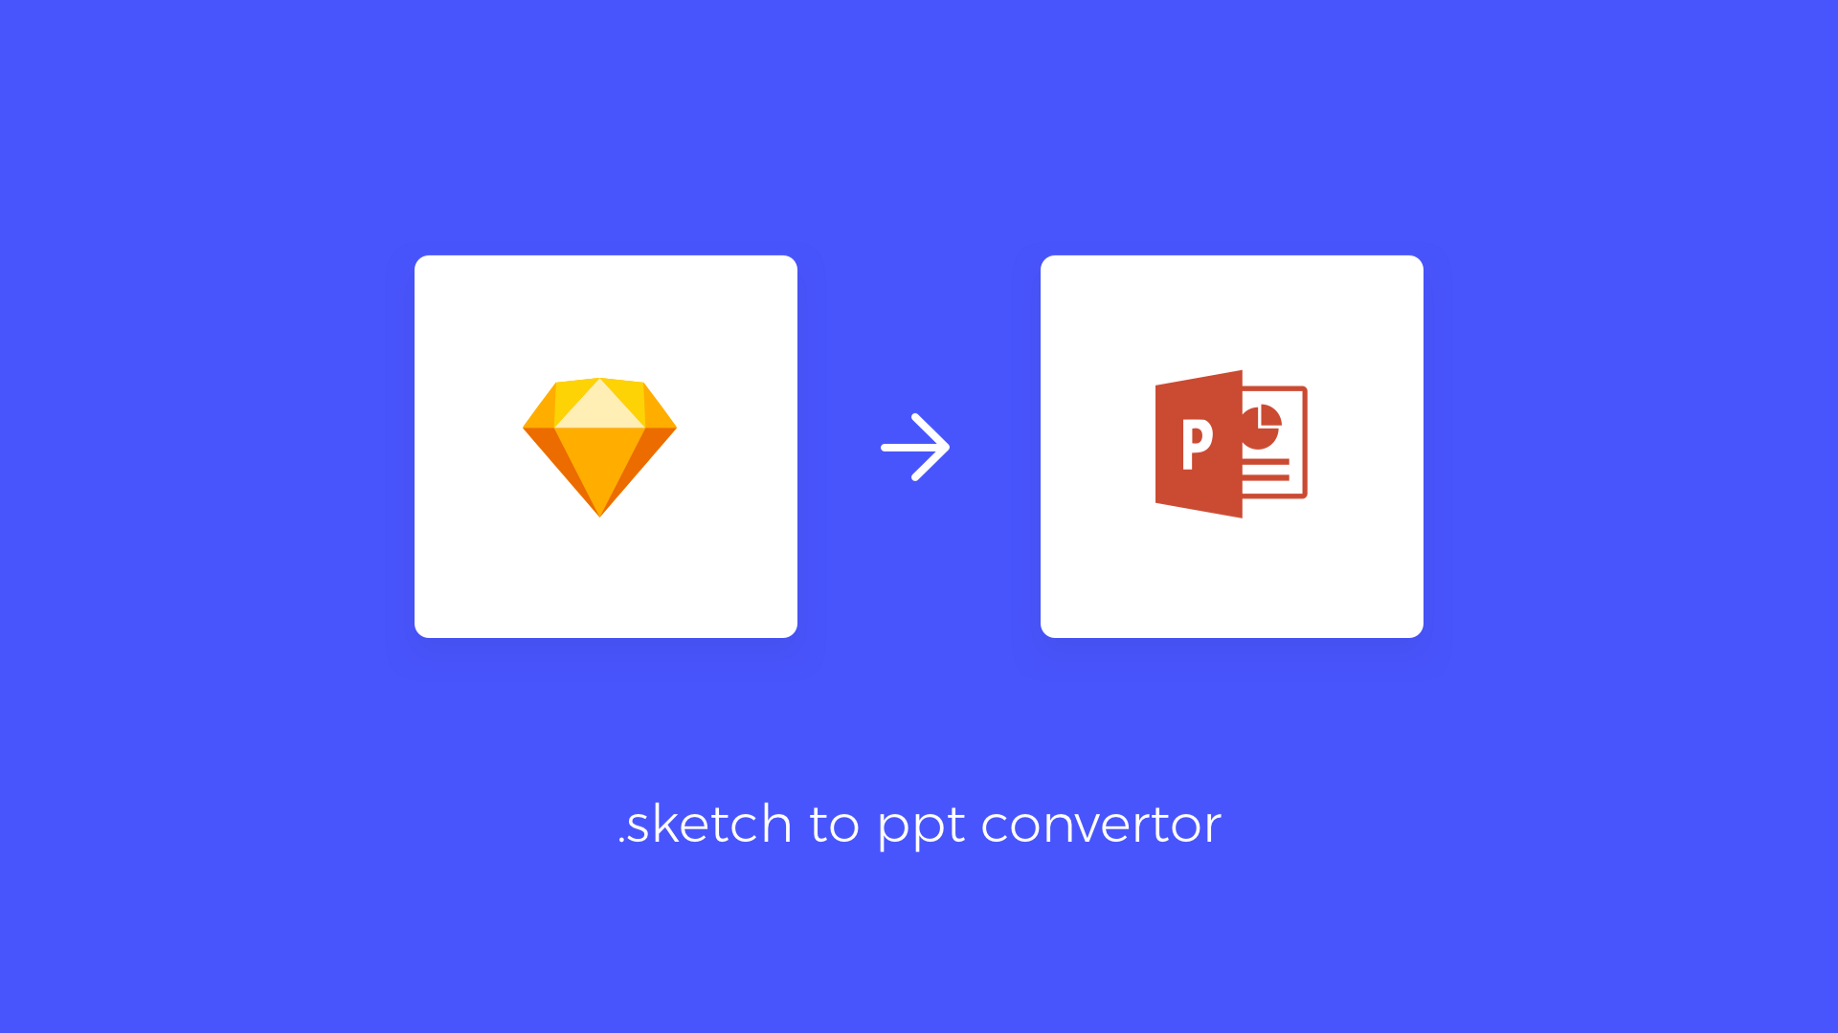 Time to design (ppt/key) presentations right in sketch and convert